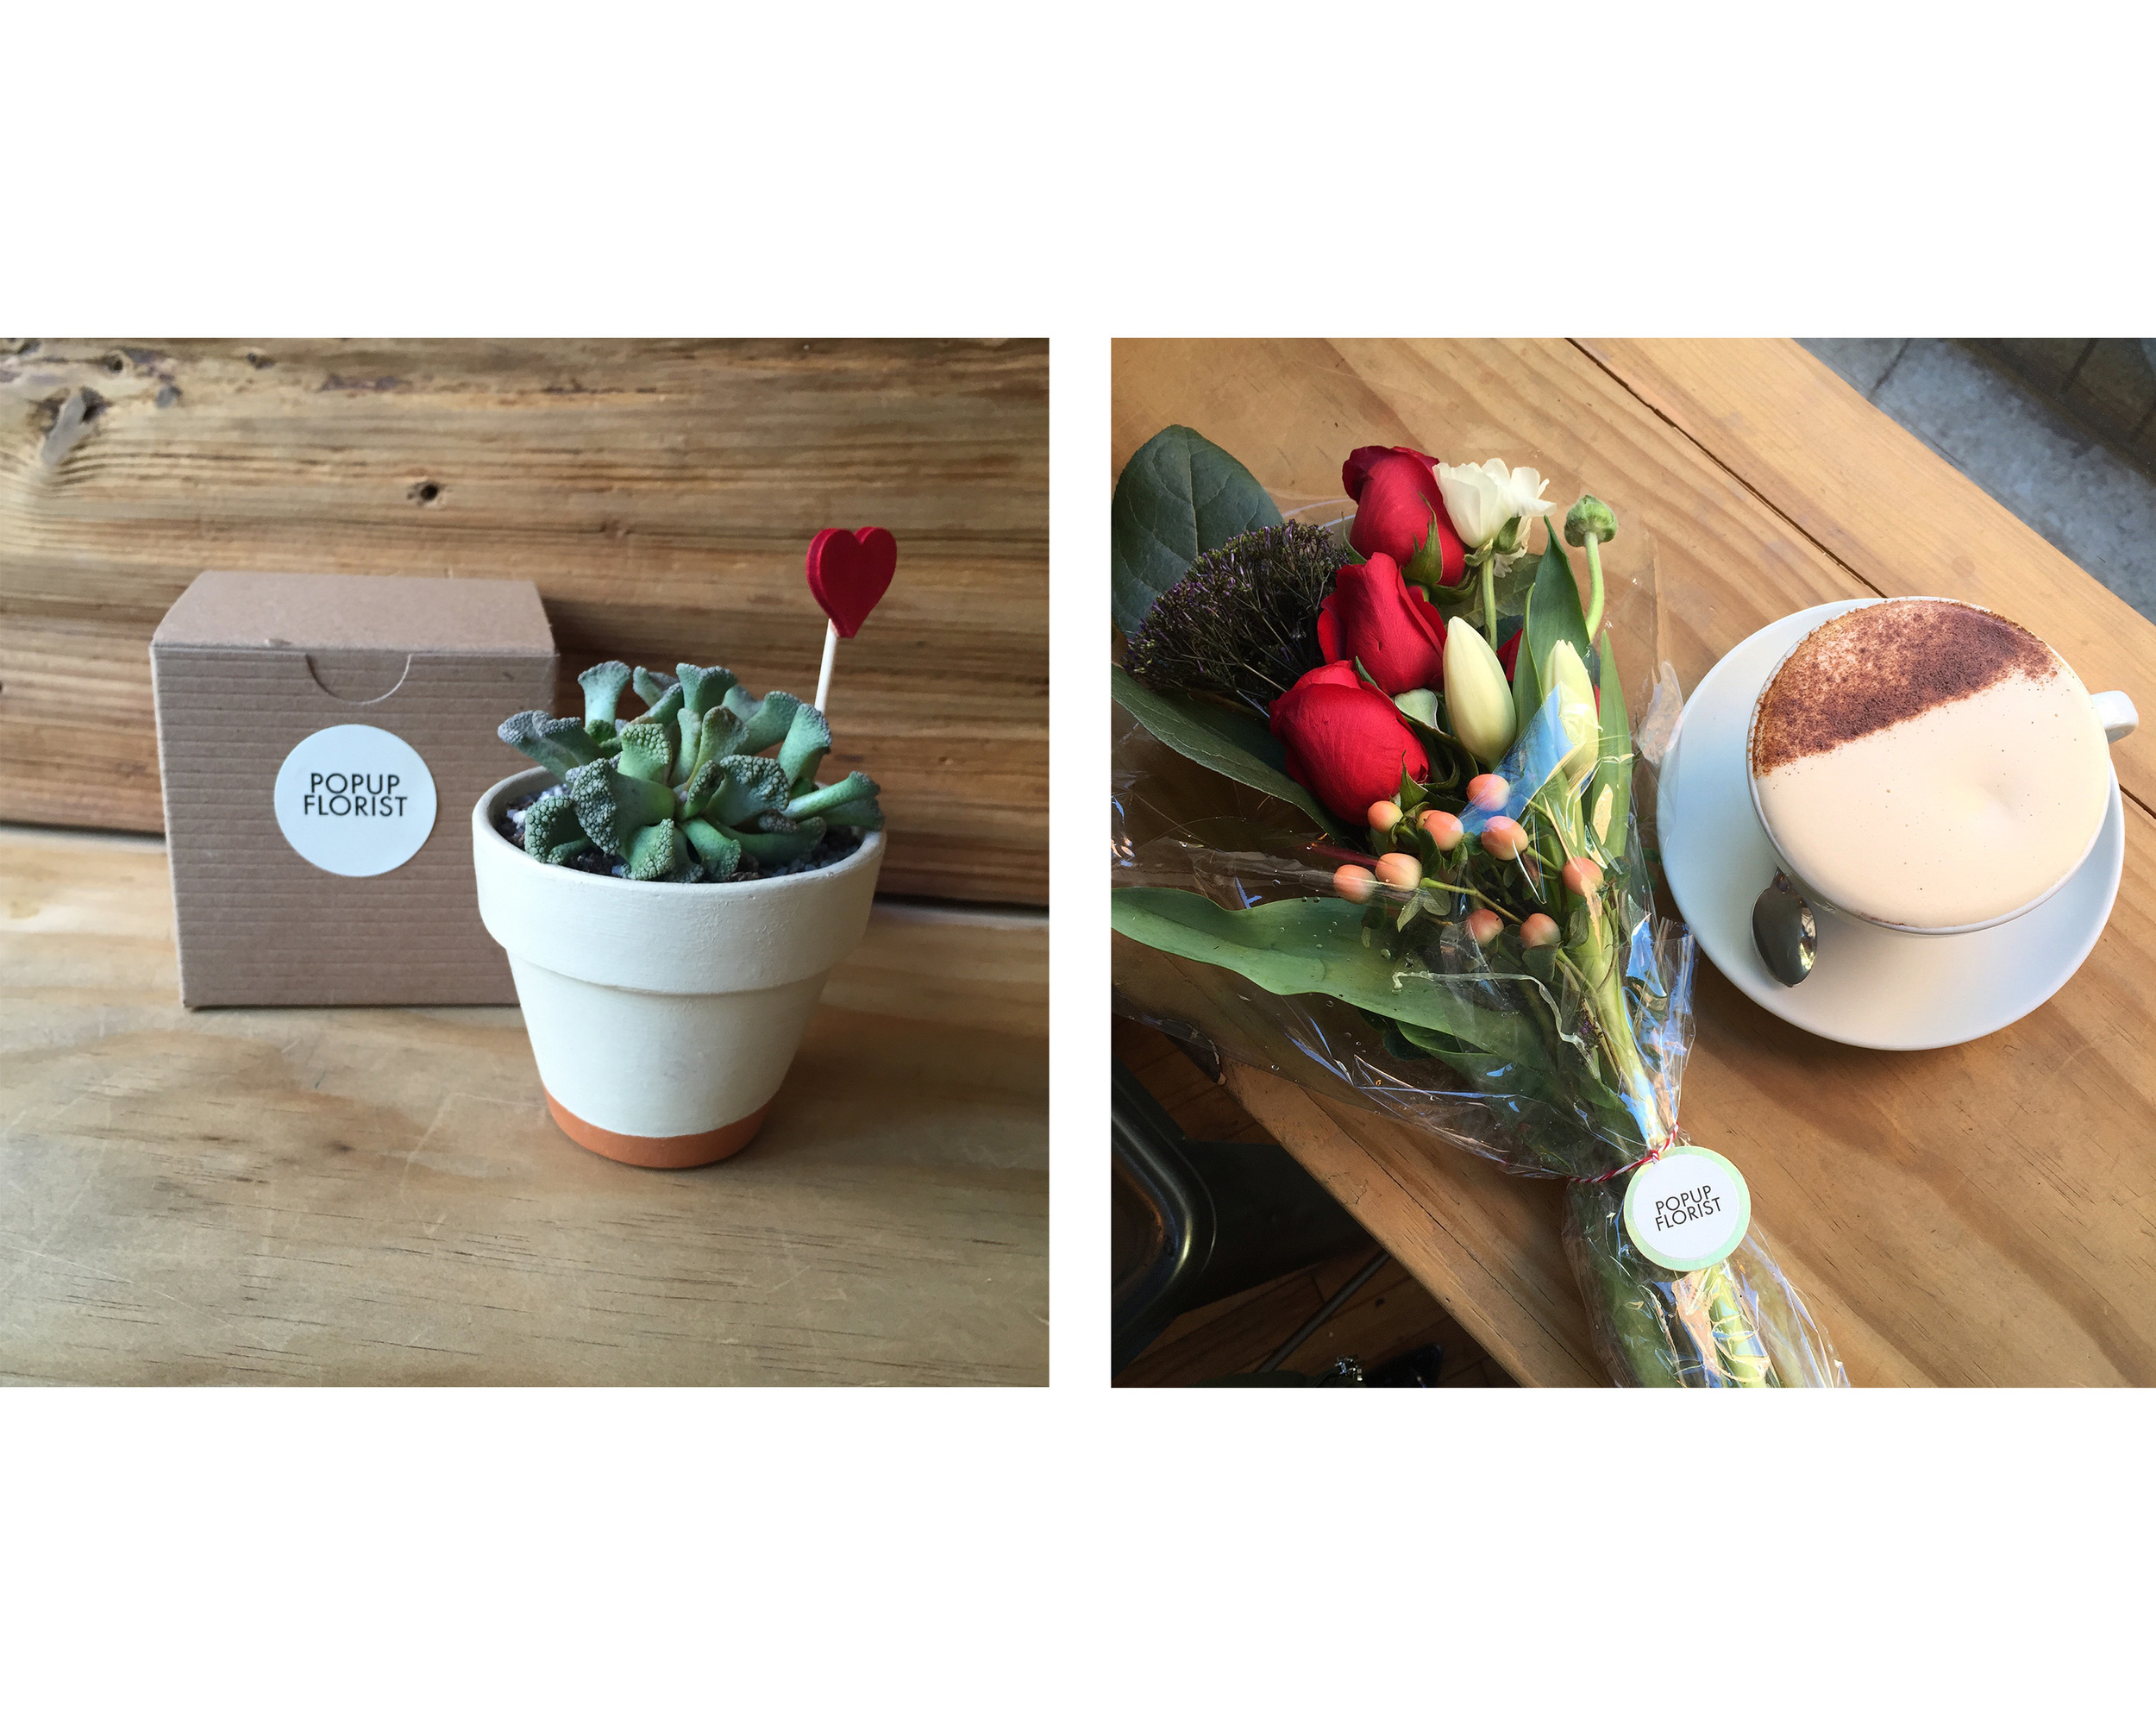 POPUPFLORIST Valentine's Day 2016 at The Elk